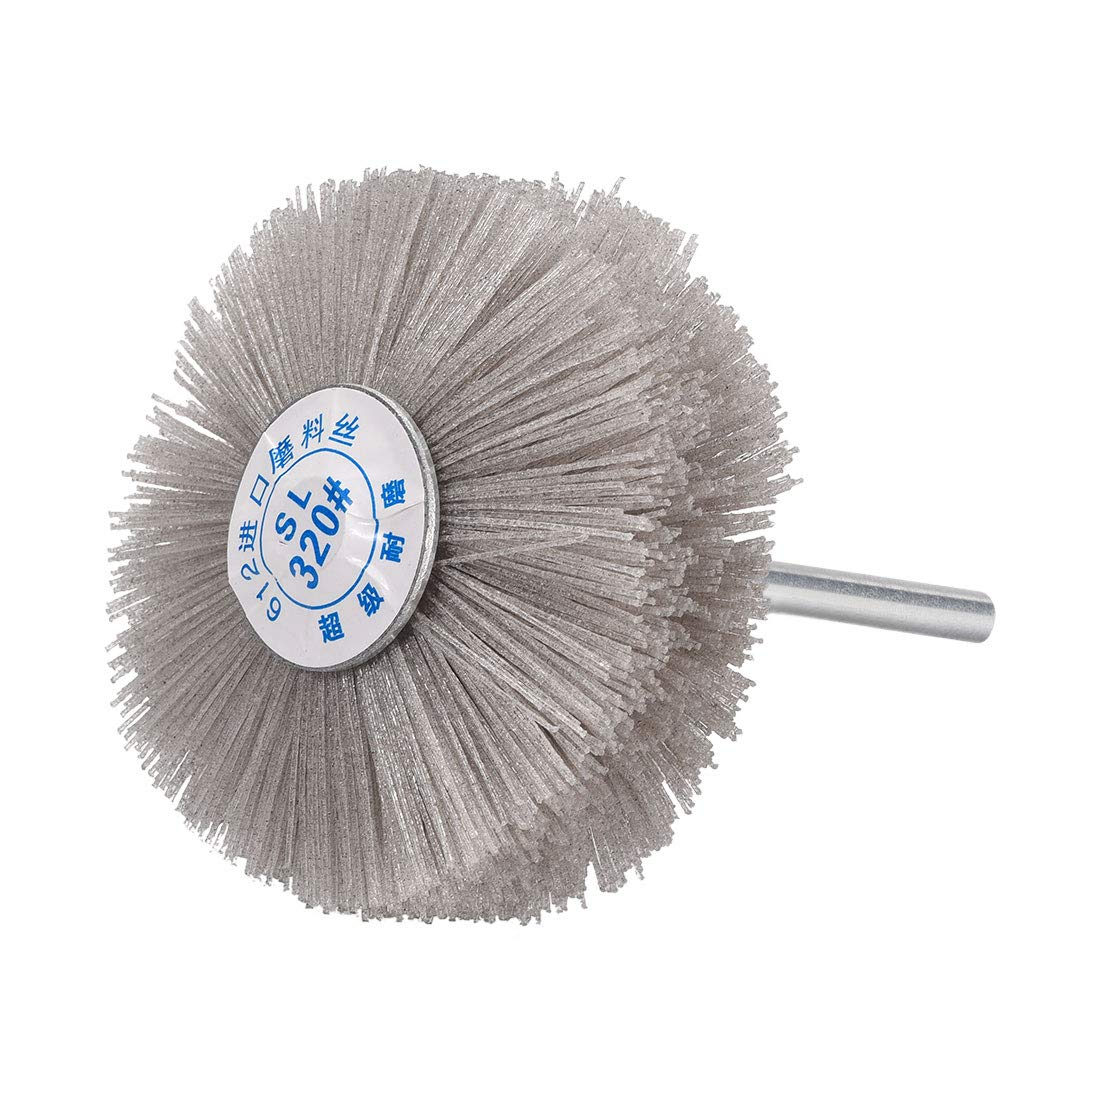 uxcell Abrasive Nylon Wheel Brush 120 Grits with 1//4 Inch Shank for Polish Grinder